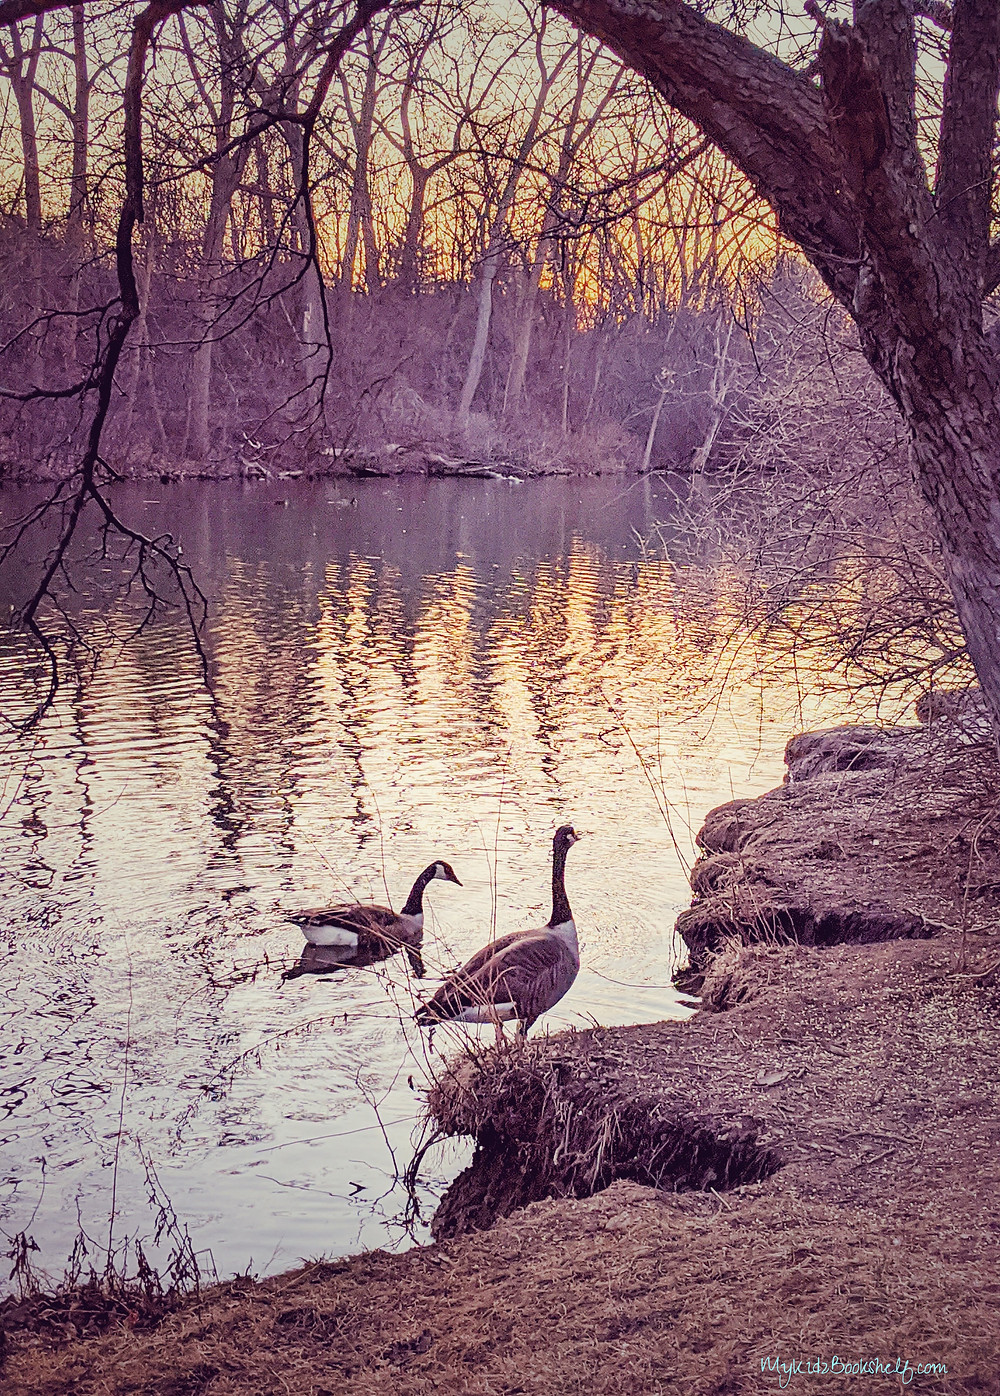 two geese by pond during sunset